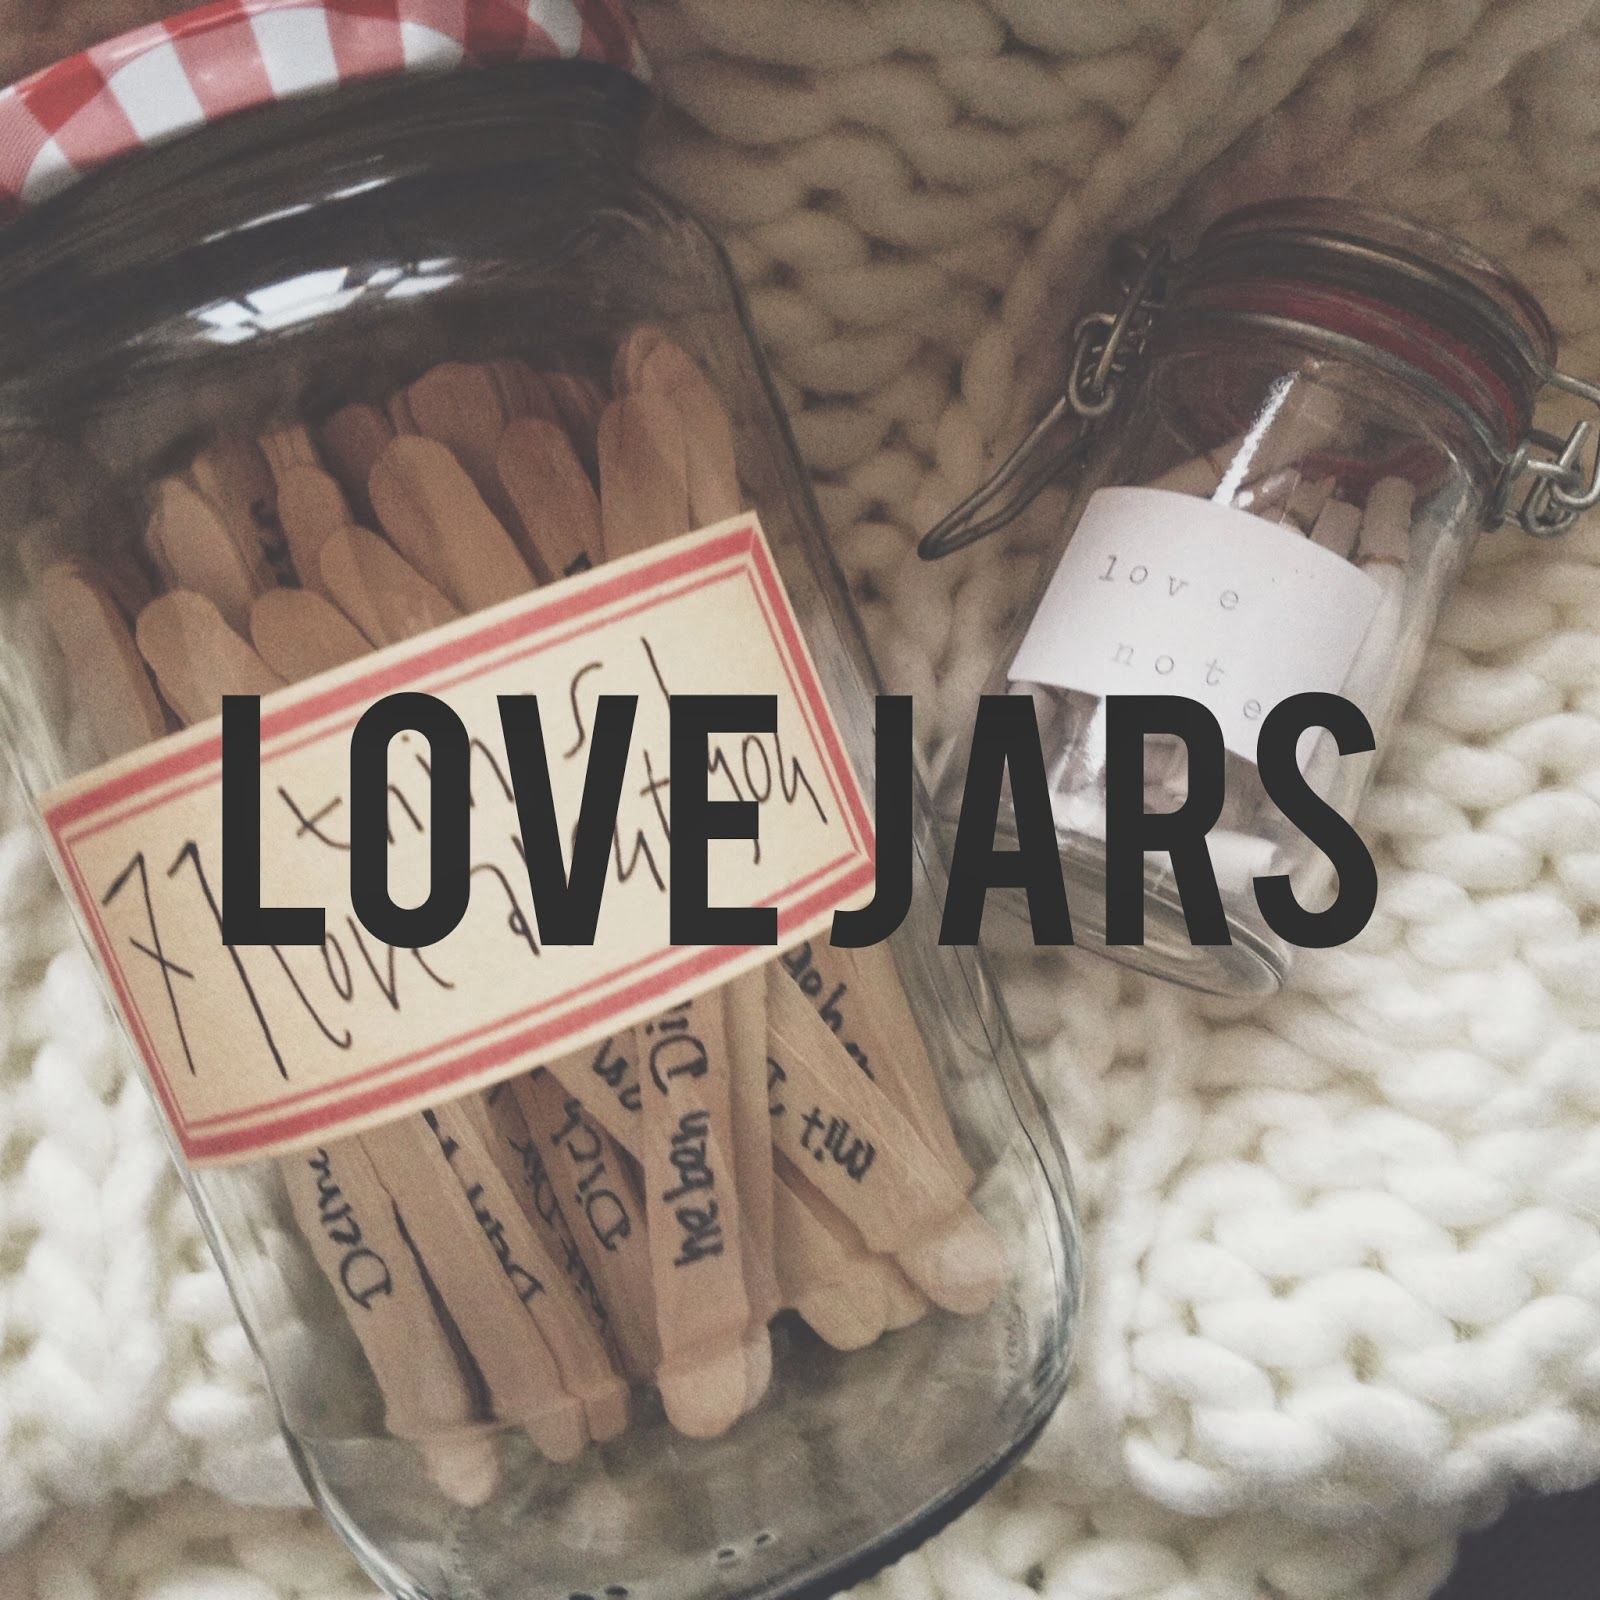 10 Sweet Diy Valentine S Day Gift Ideas For The Hopeless Romantic We The Pvblic